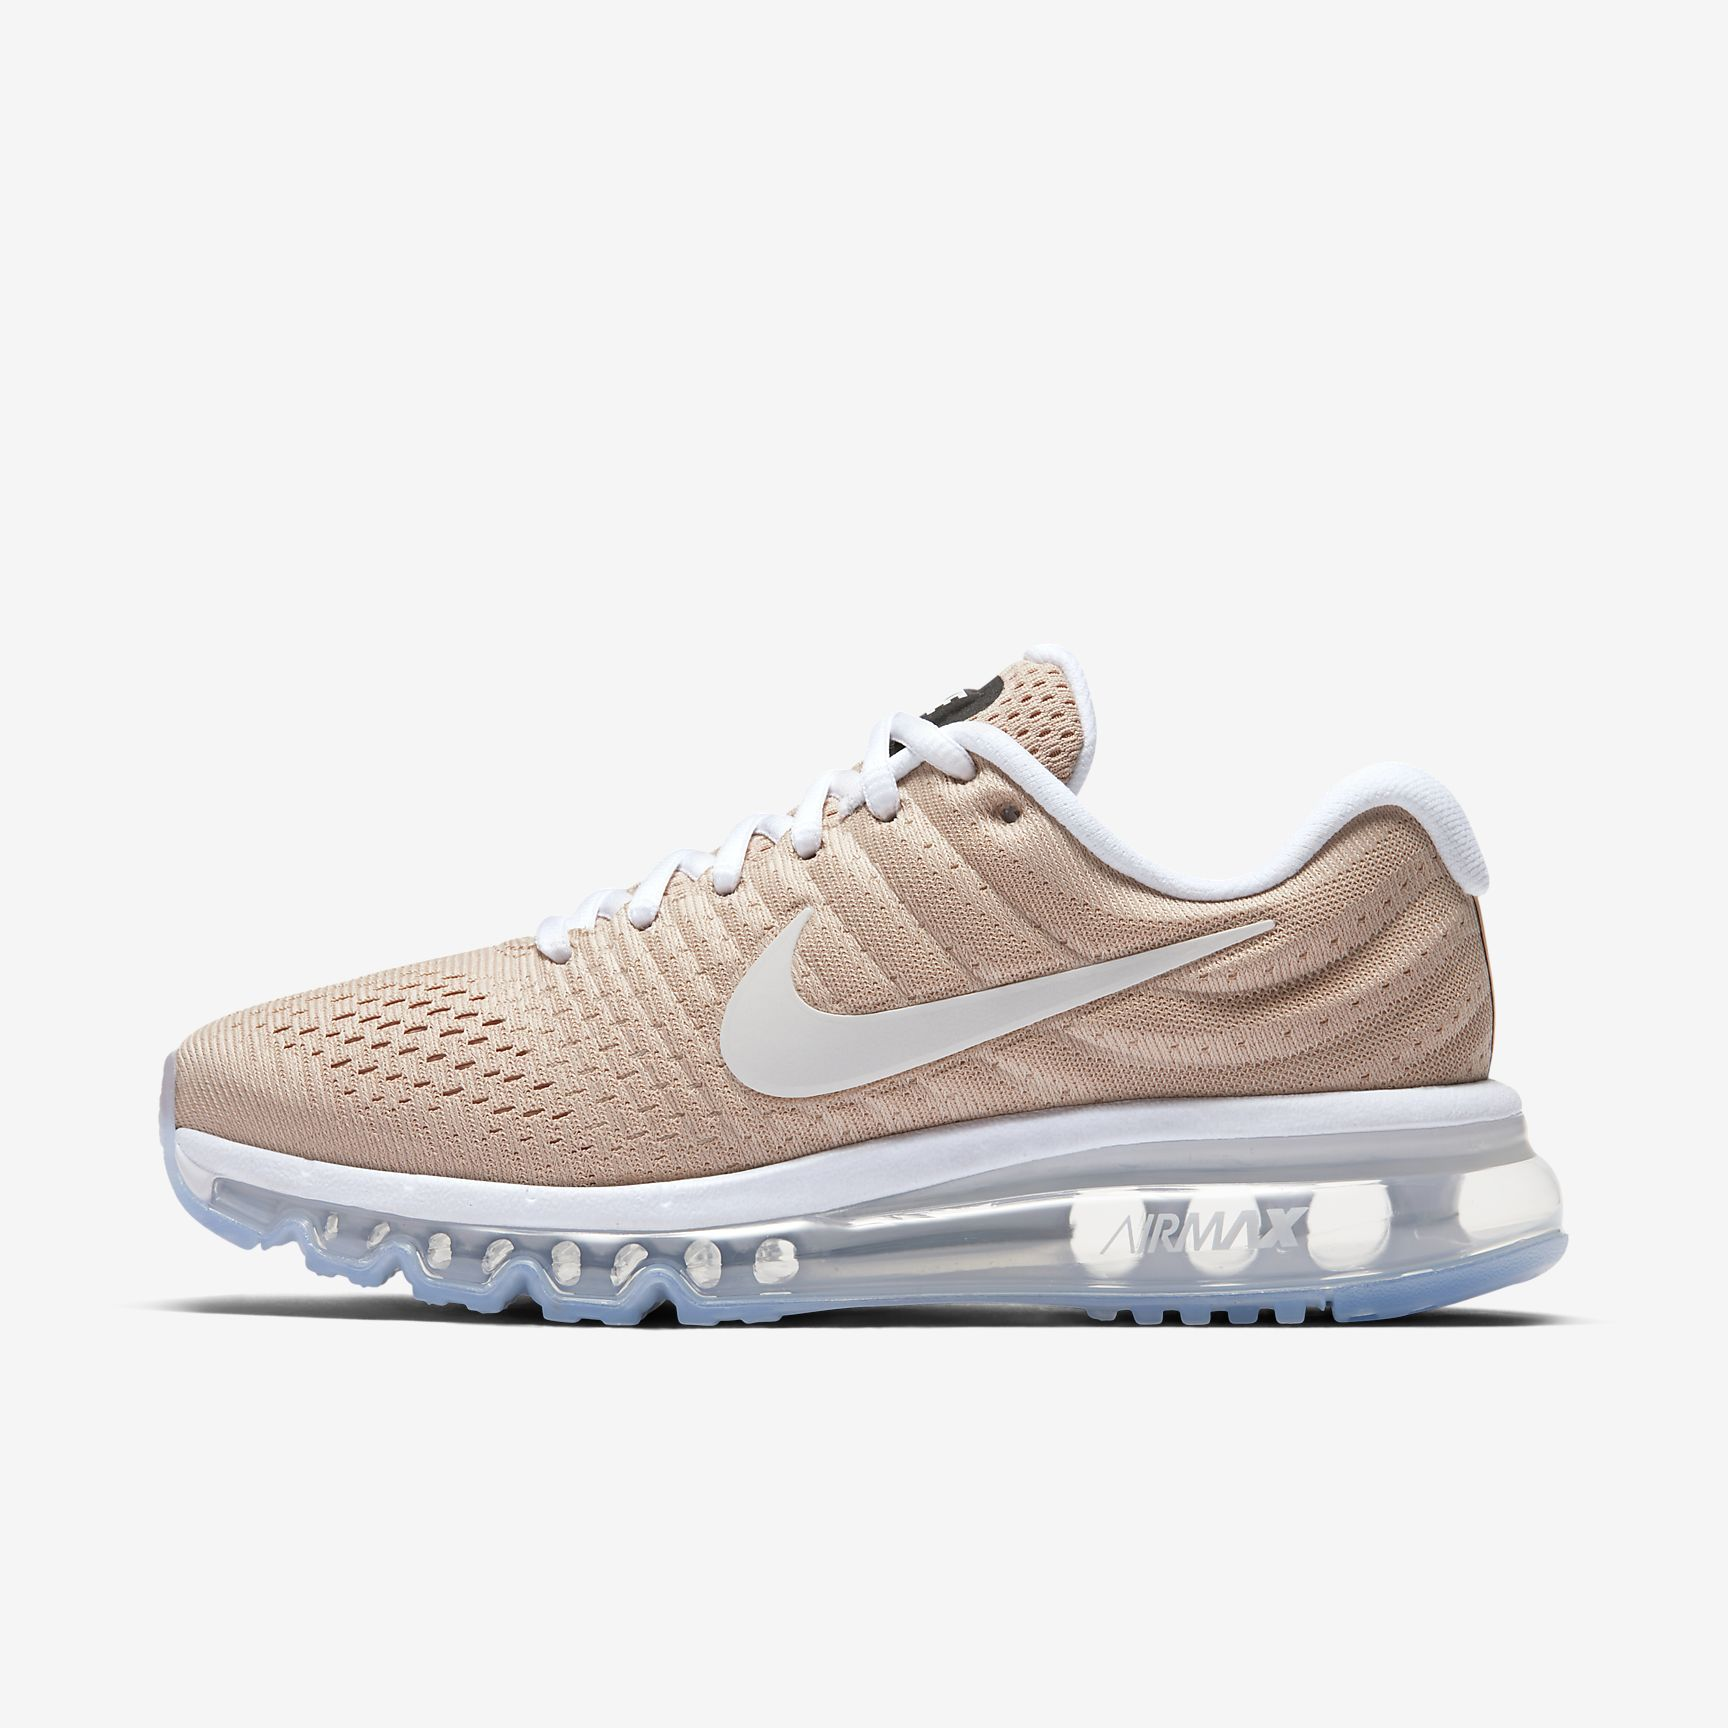 nouvelle collection c5add c88a6 Chaussures Femme AIR MAX 2017 Beige bio/Blanc | nike-air-max ...